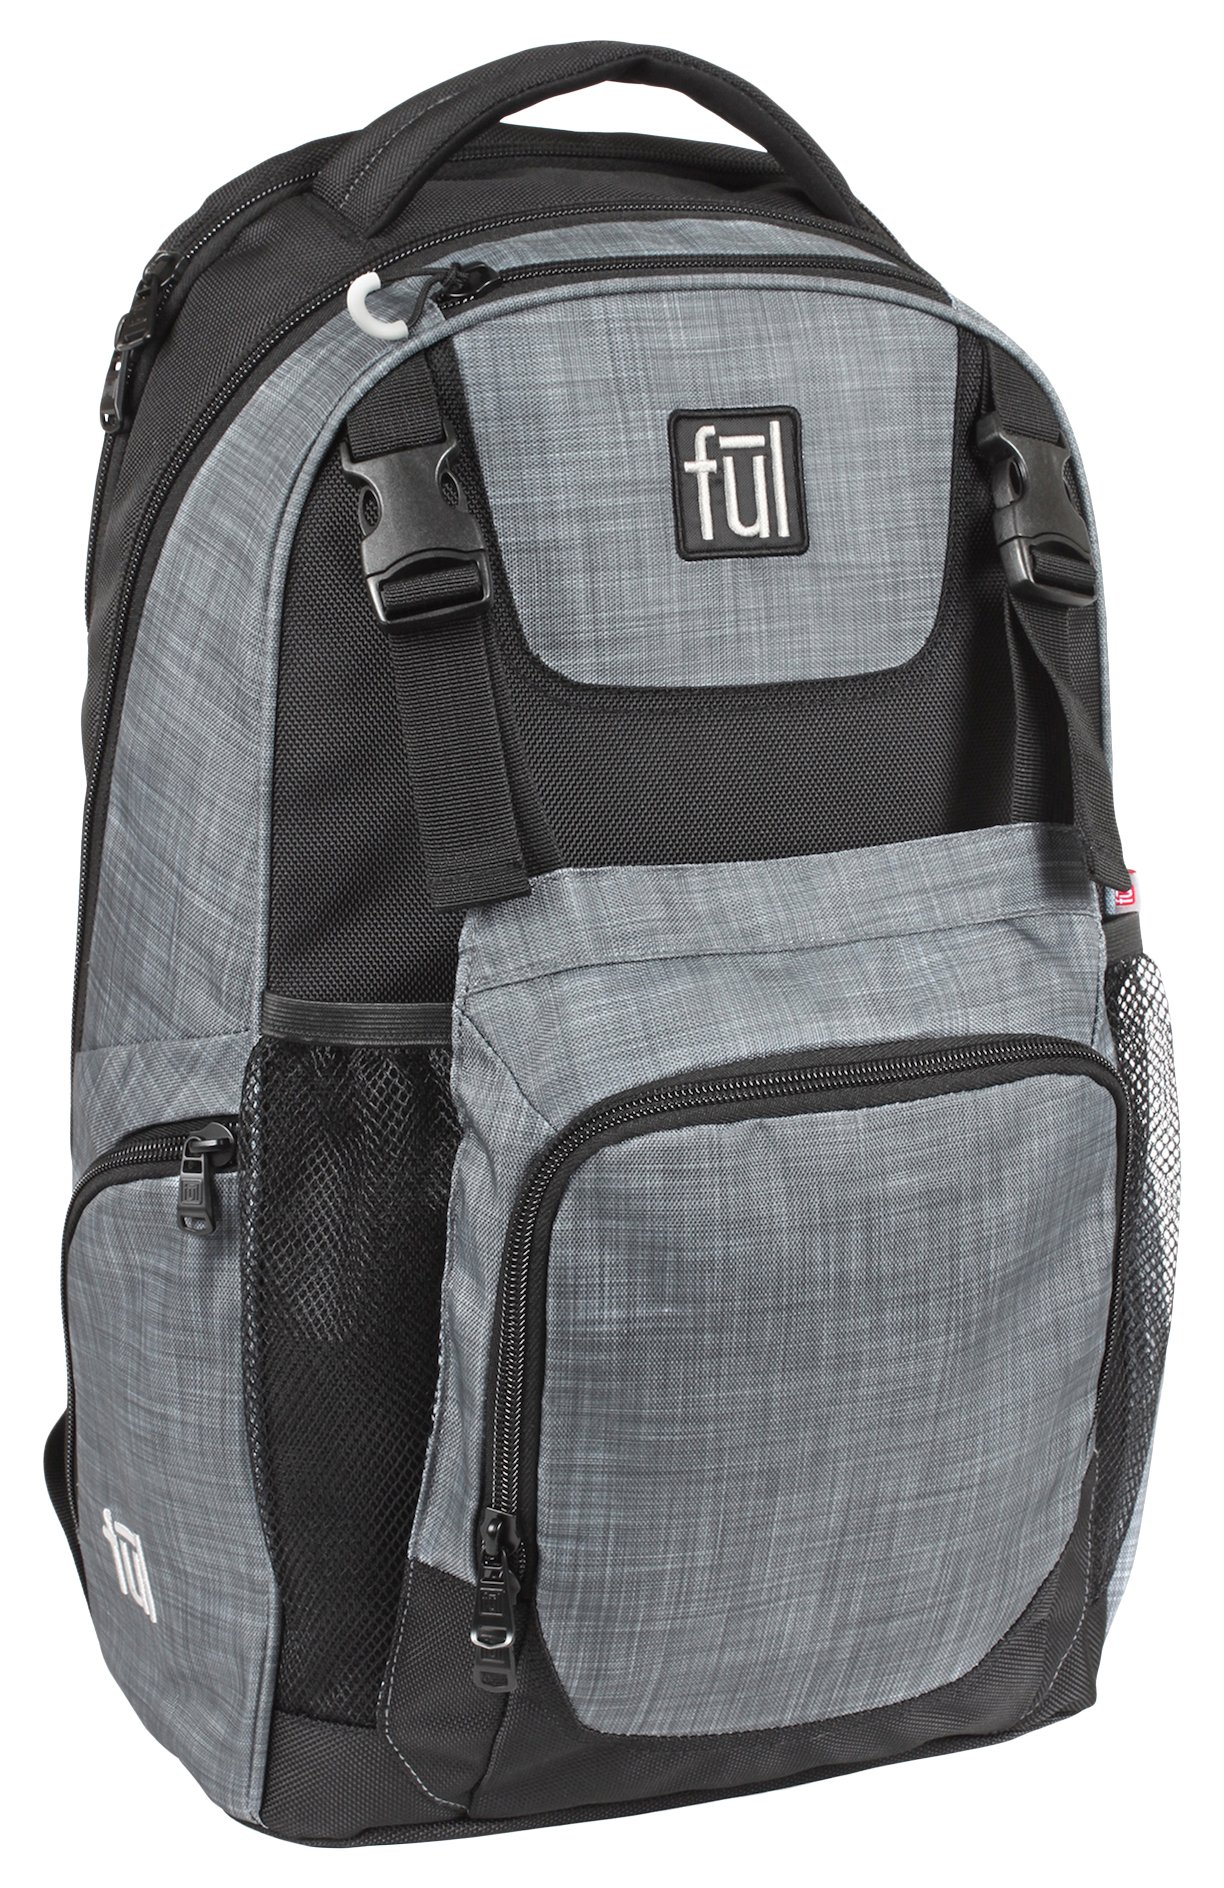 FUL Nomad Backpack (Heather Grey/Black)